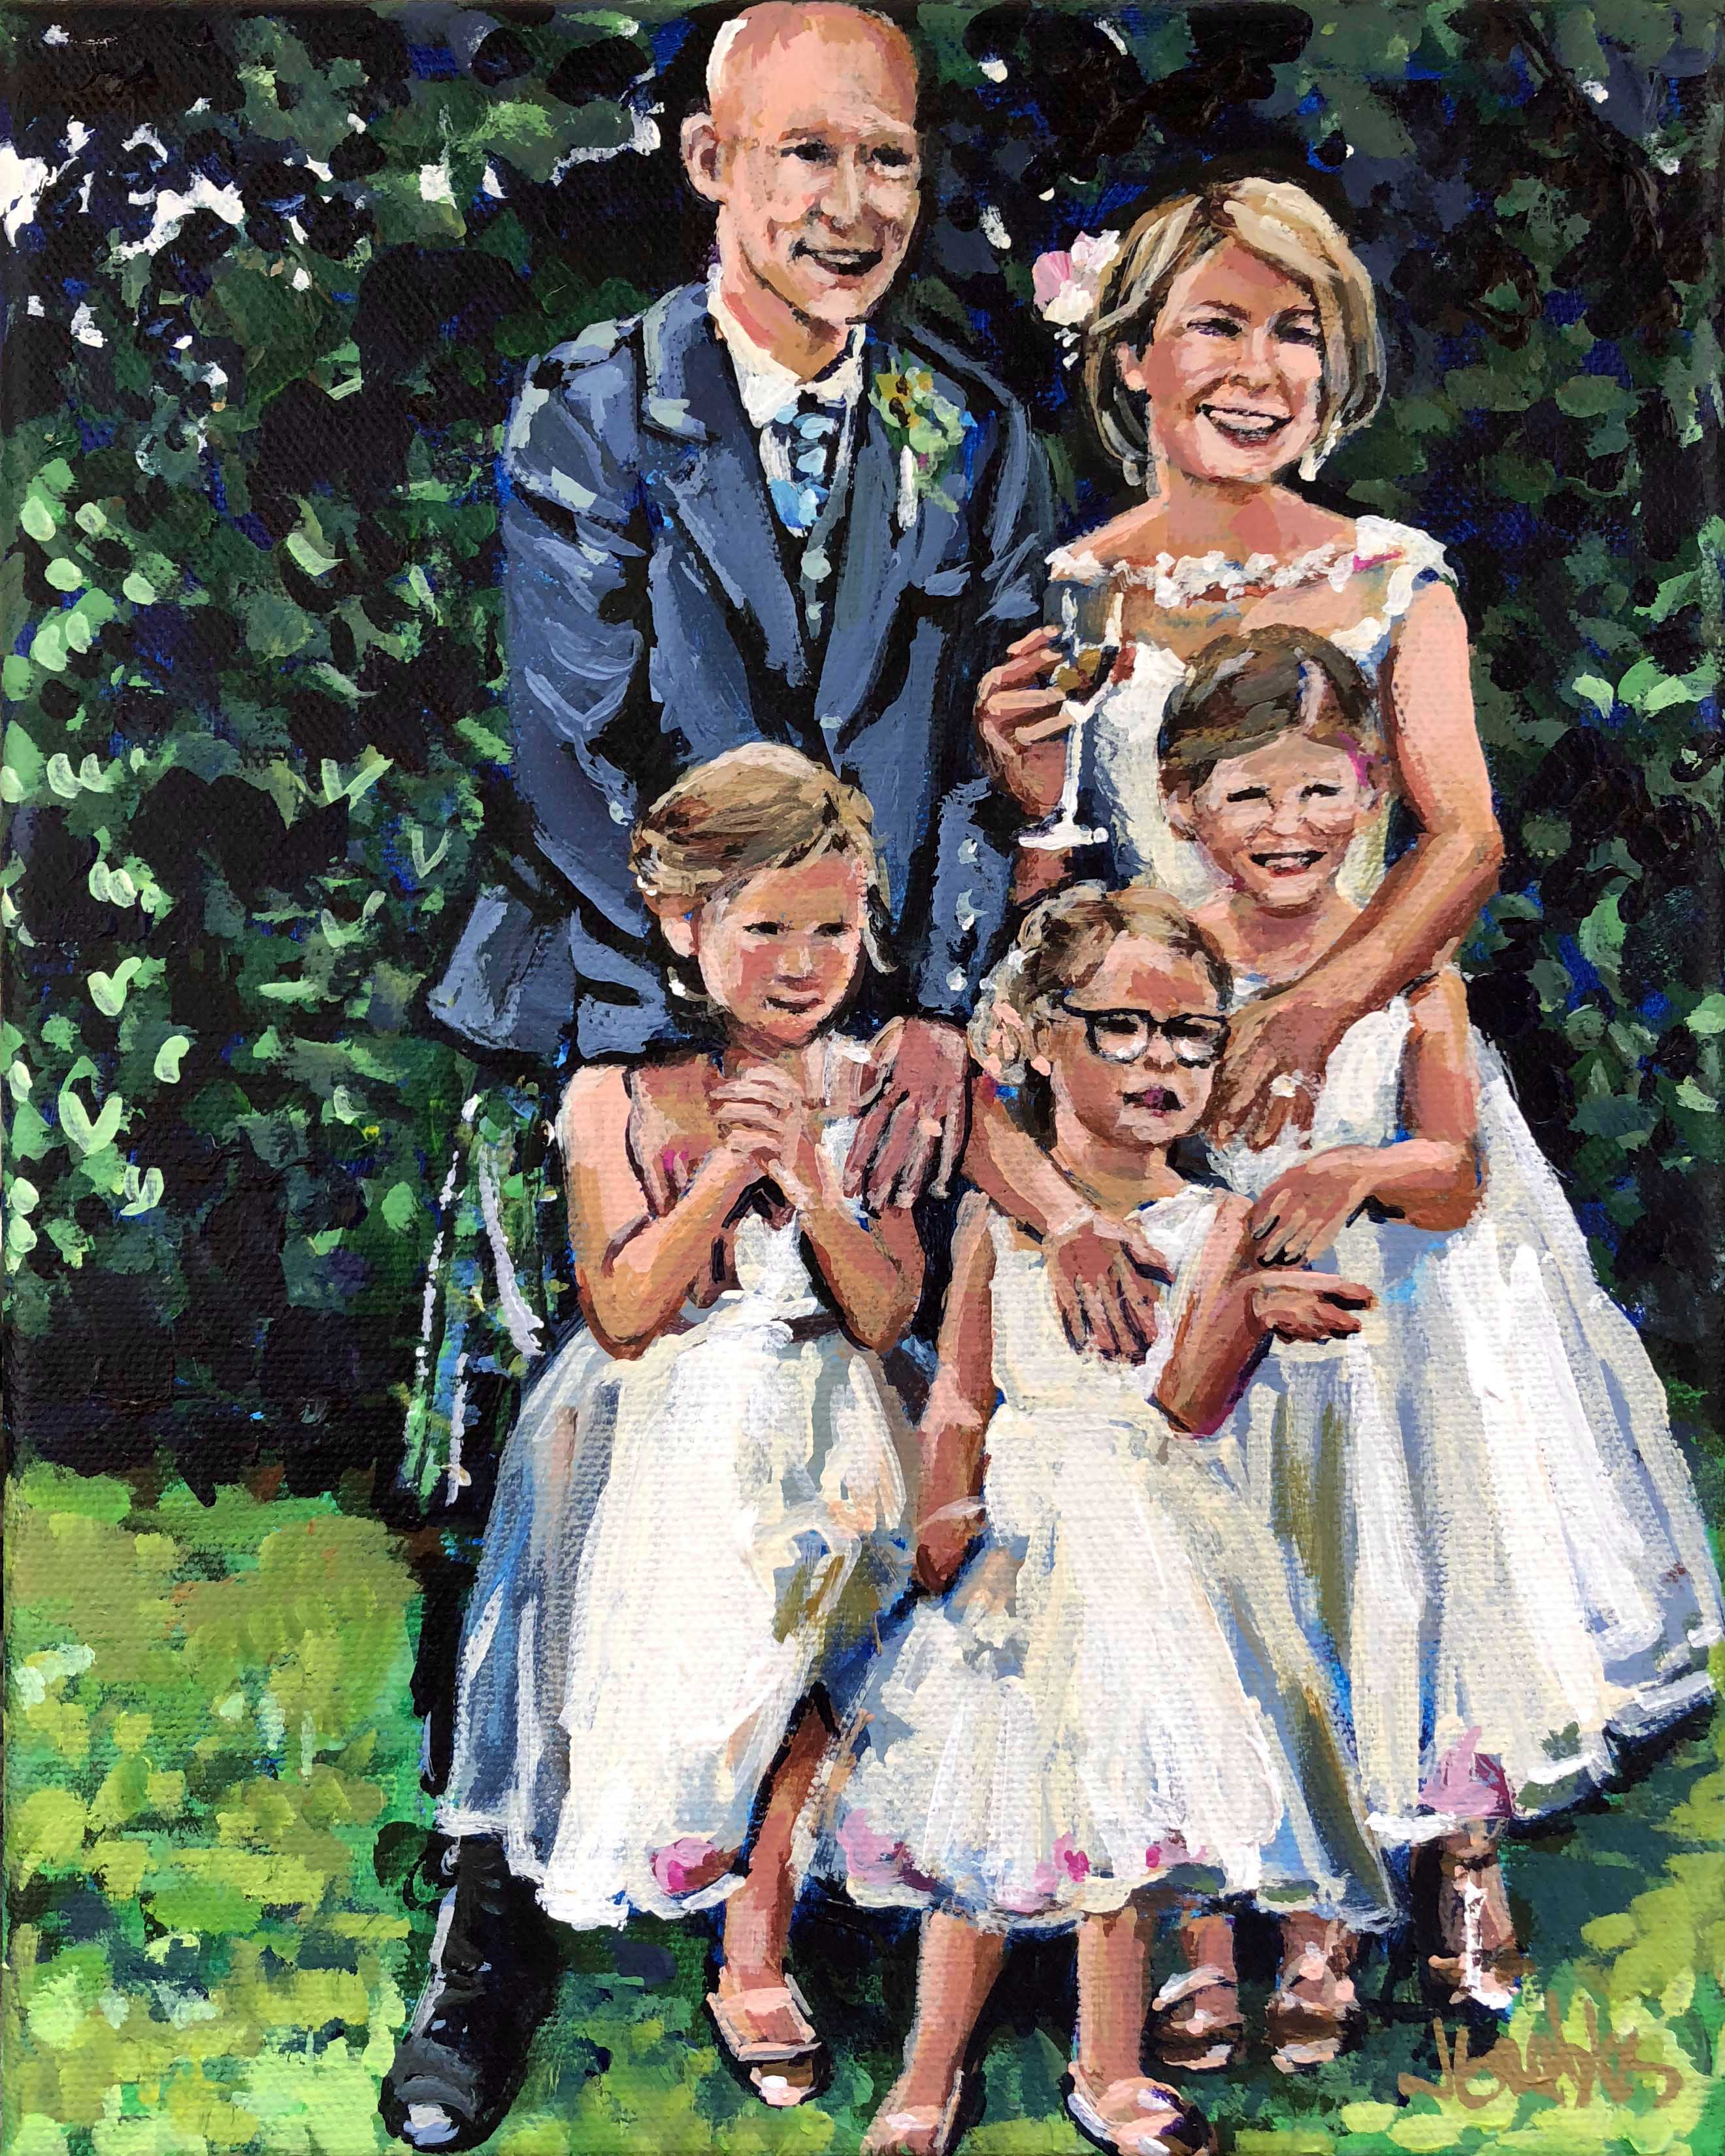 Scotland Wedding Family 8x10